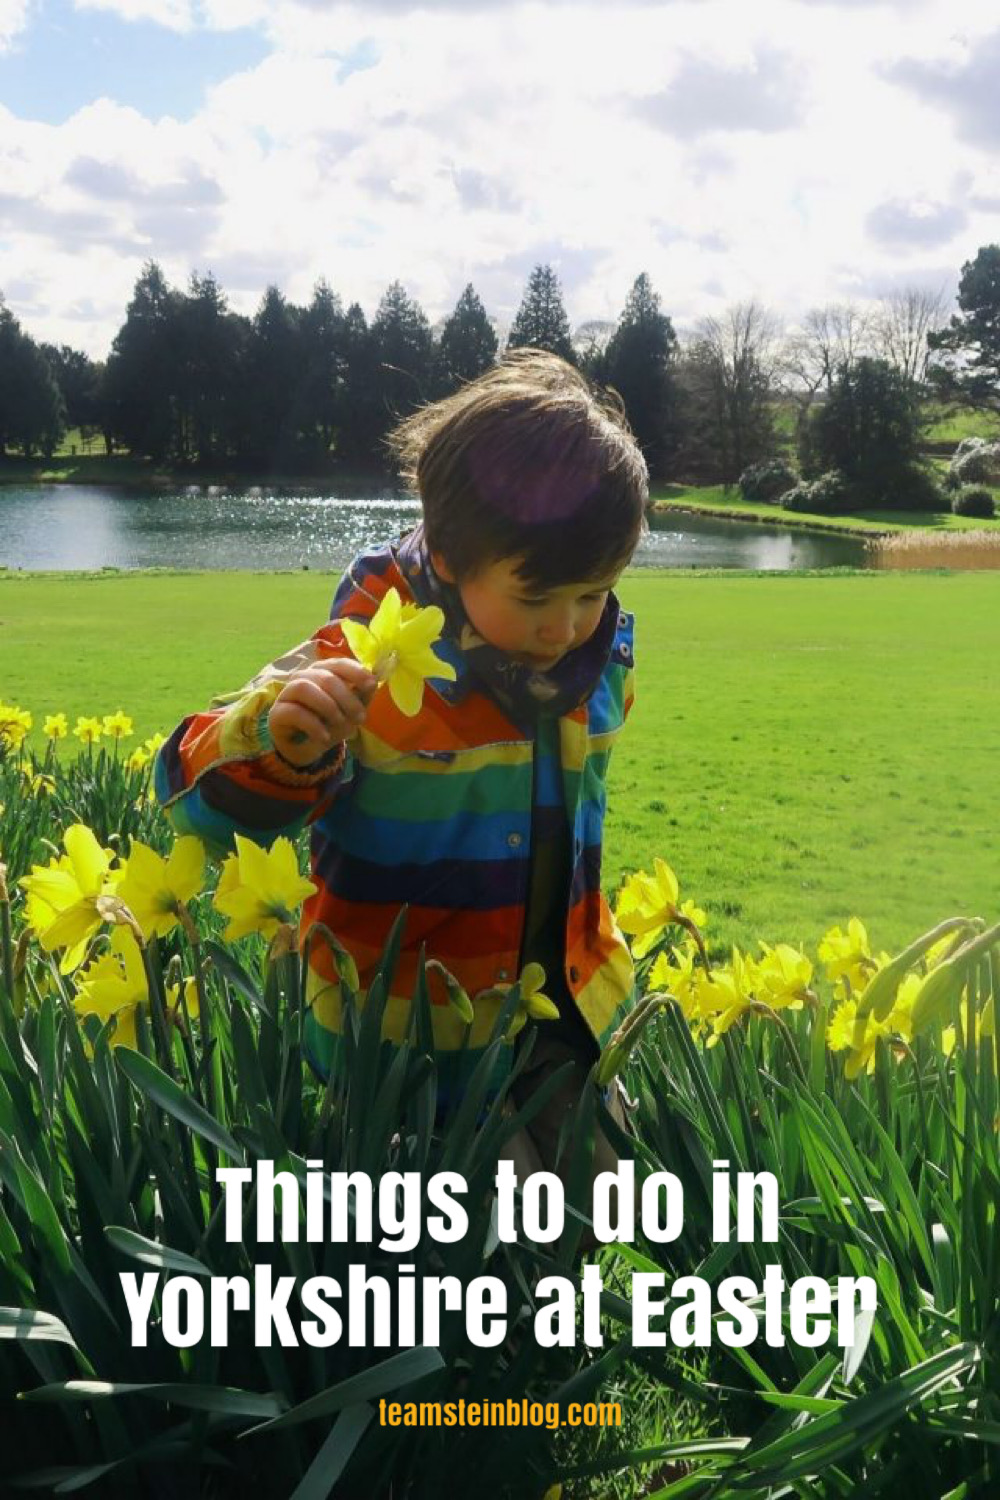 Things to do in Yorkshire this Easter